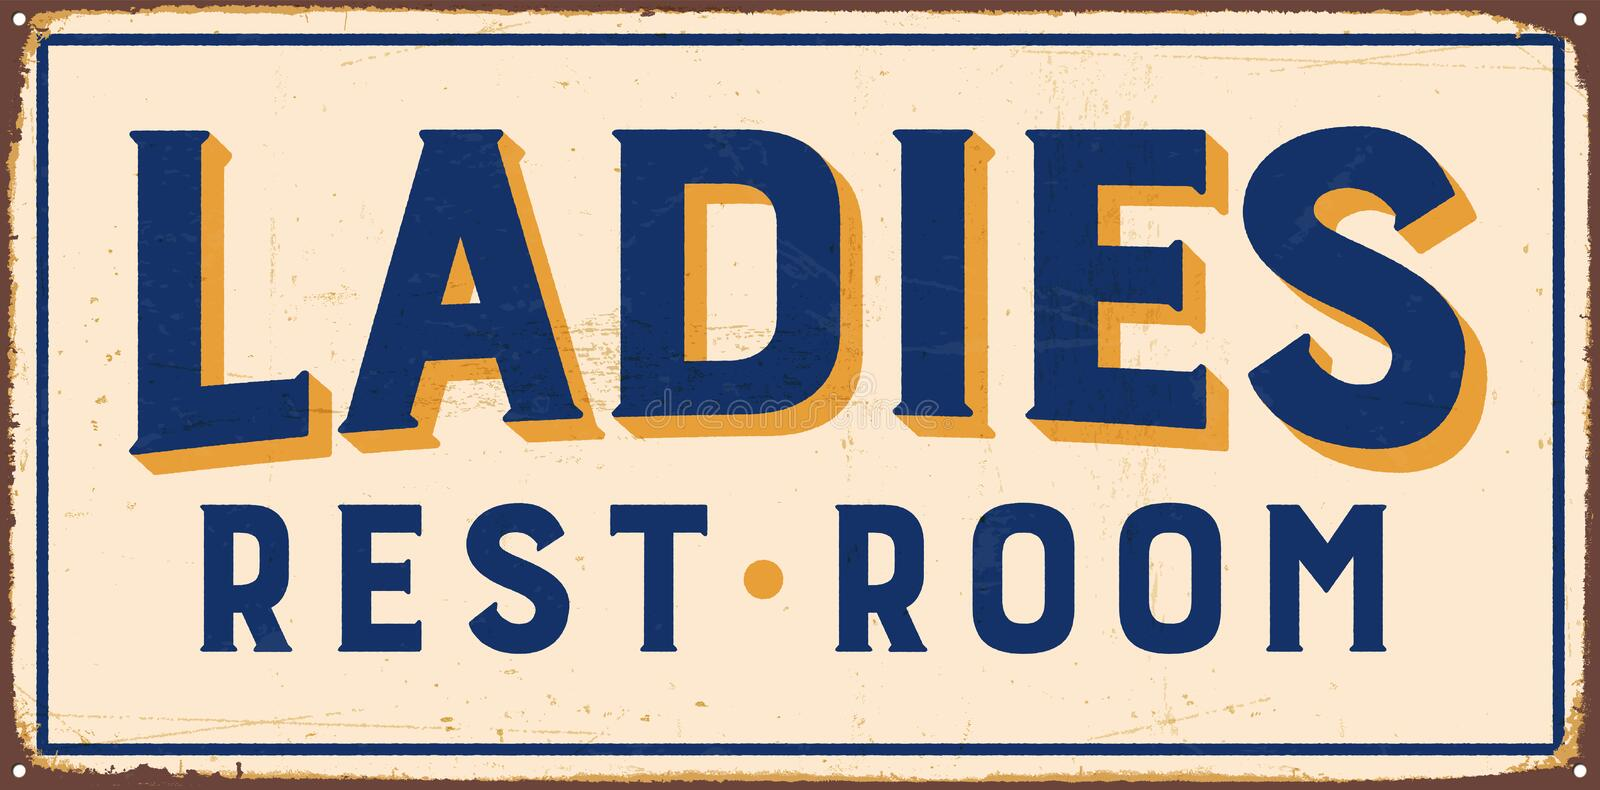 Vintage Metal Sign. Vintage Vector Metal Sign - Ladies Rest Room - with a realistic used and rusty effect that can be easily removed for a clean, brand new sign stock illustration